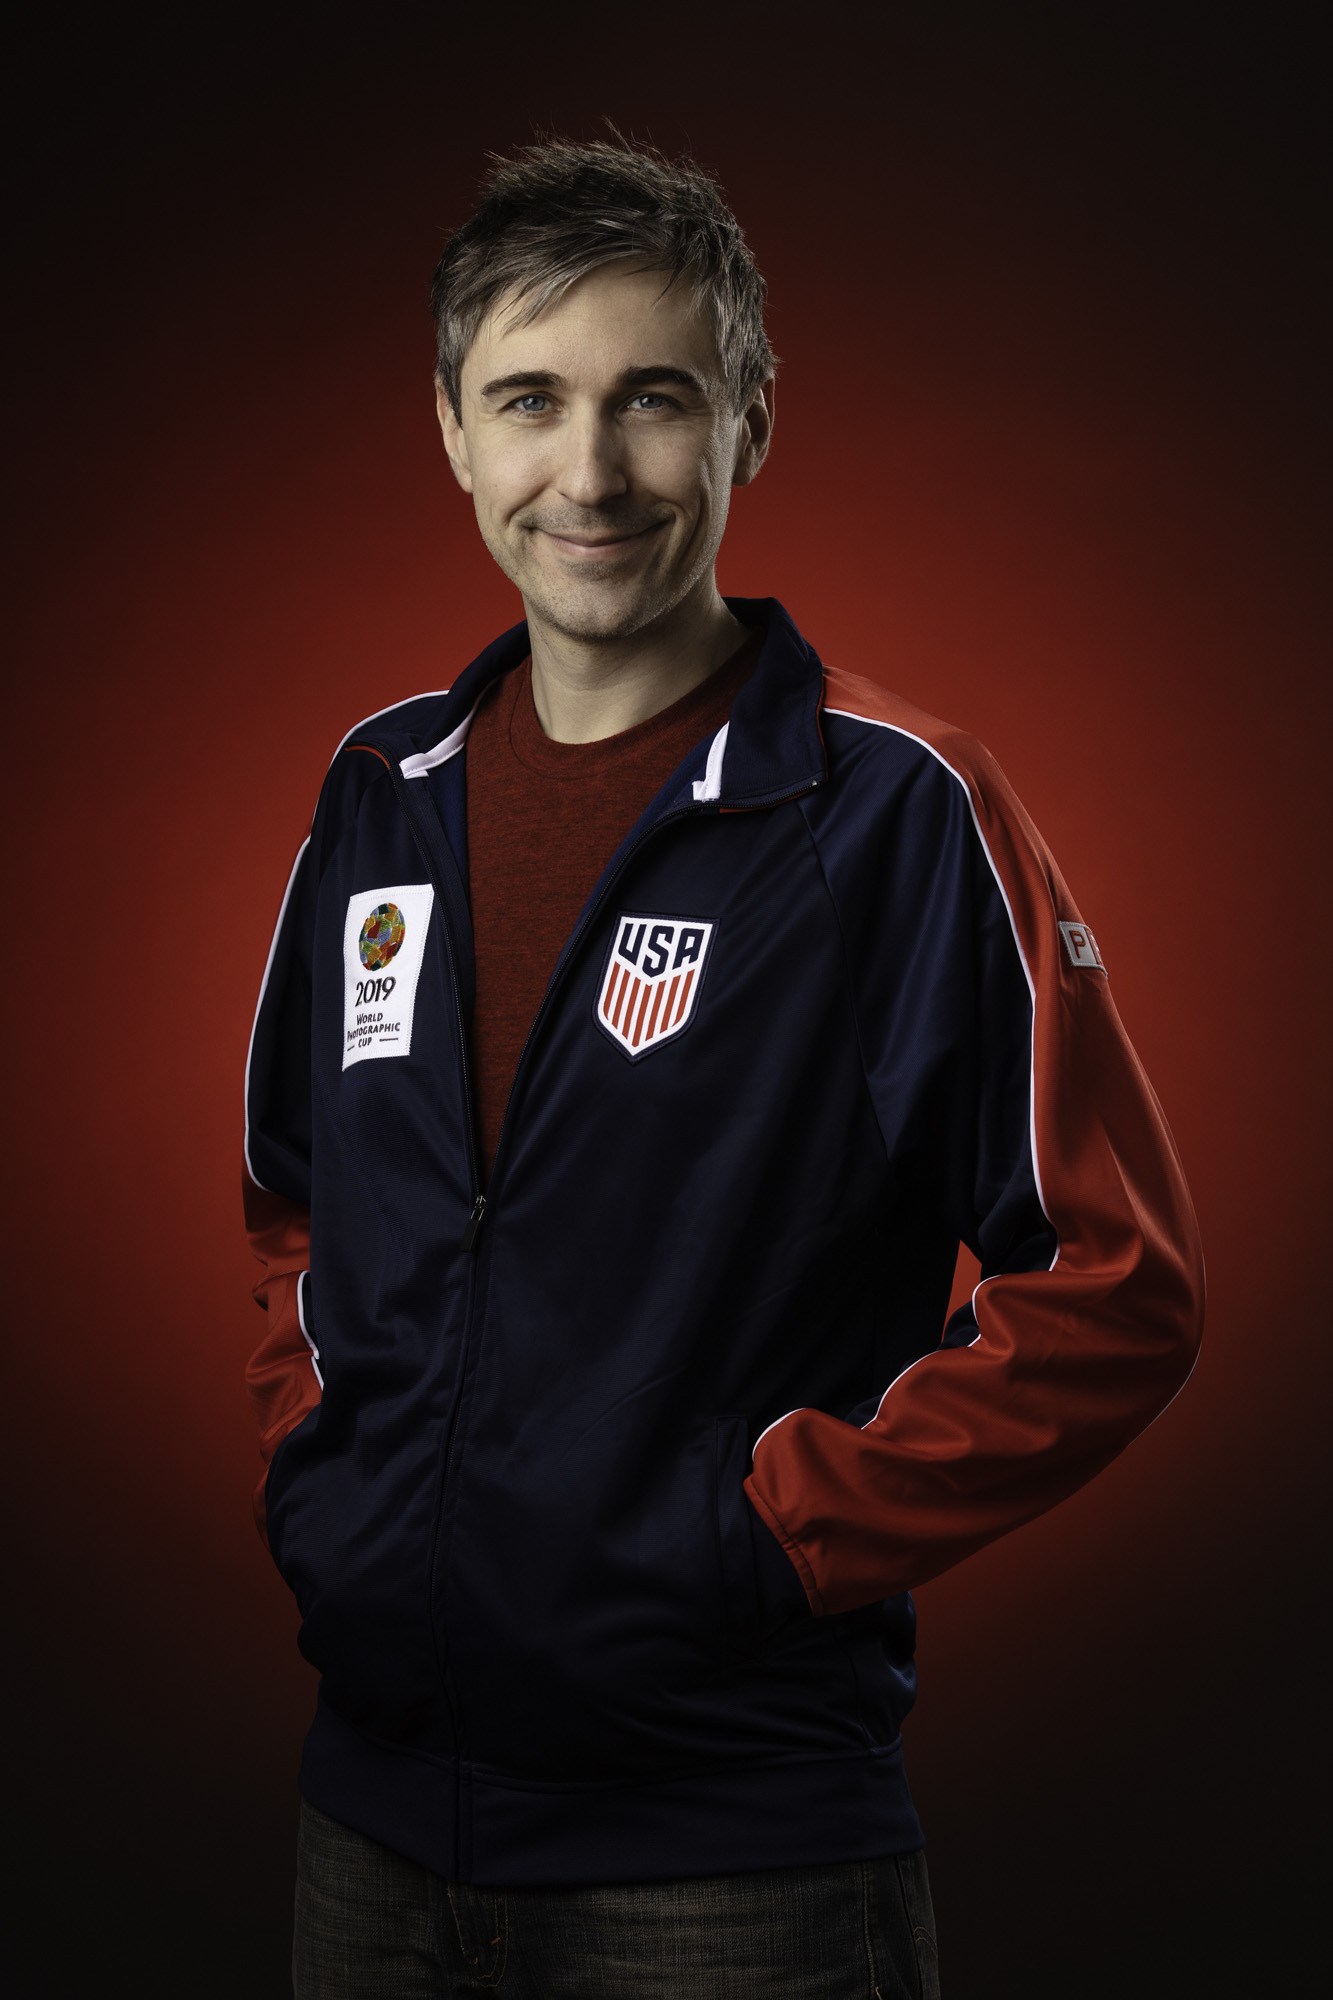 McClanahan sporting his Team USA jacket.